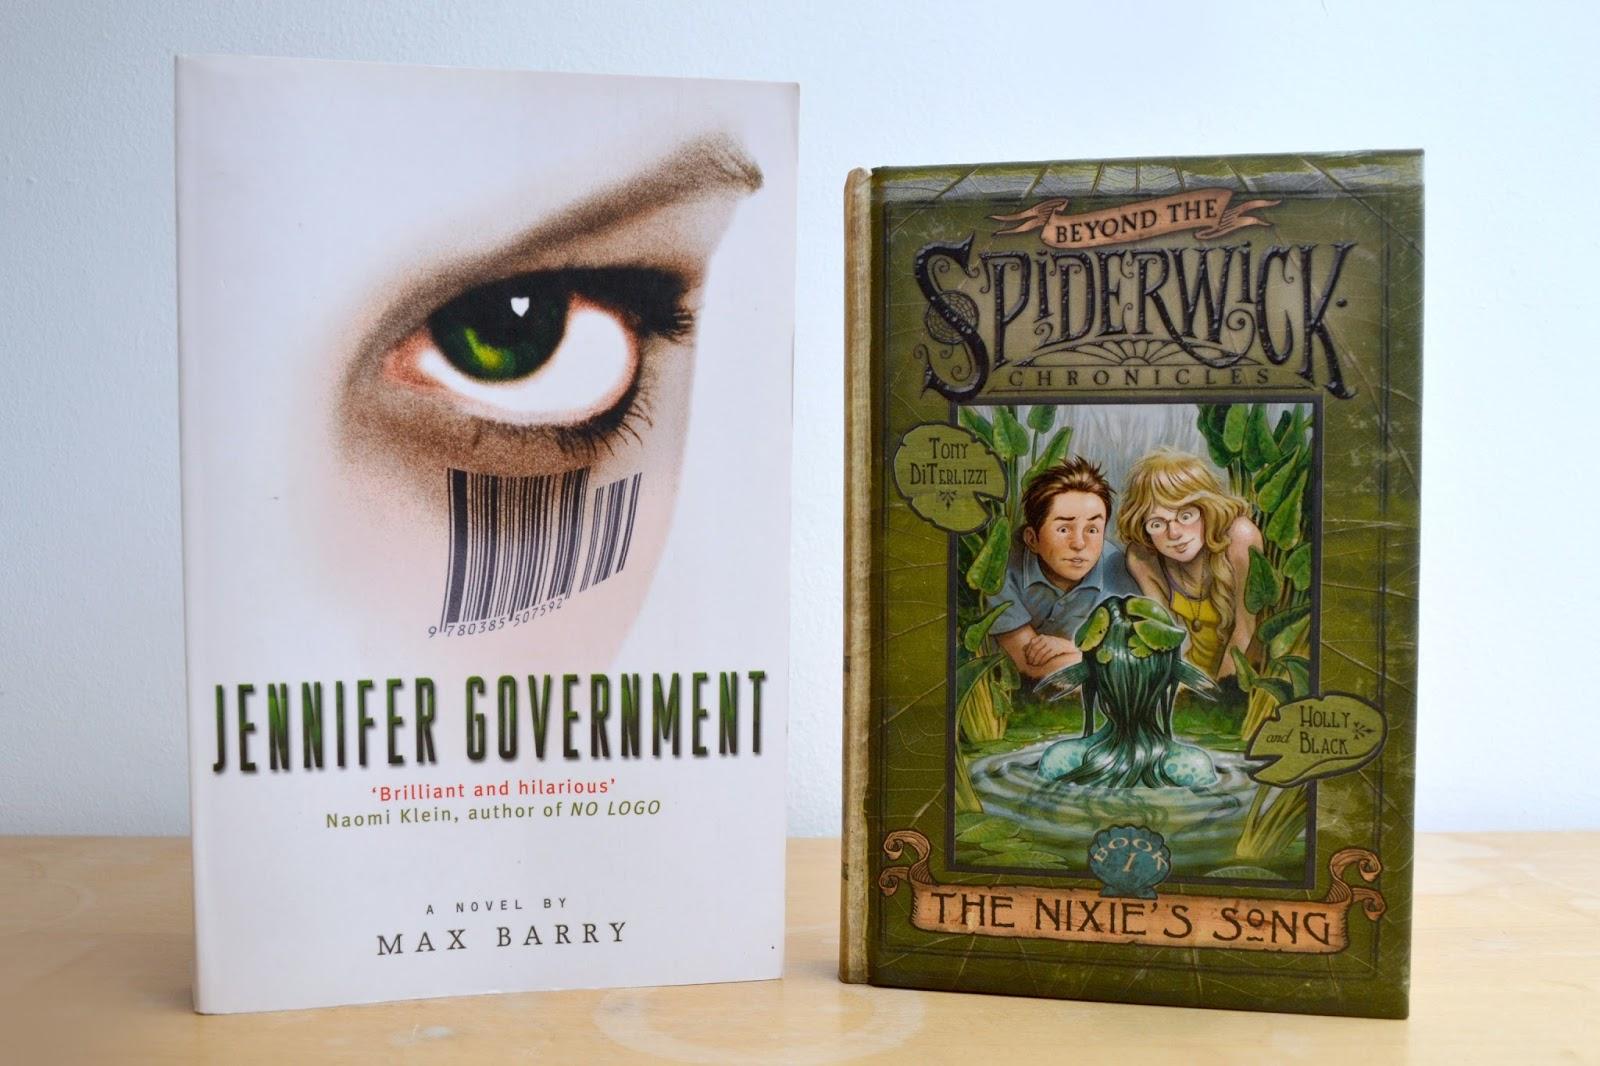 Picture of Jennifer Government by Max Barry and The Nixie's Song by Tony DiTerlizzi and Holly Black.